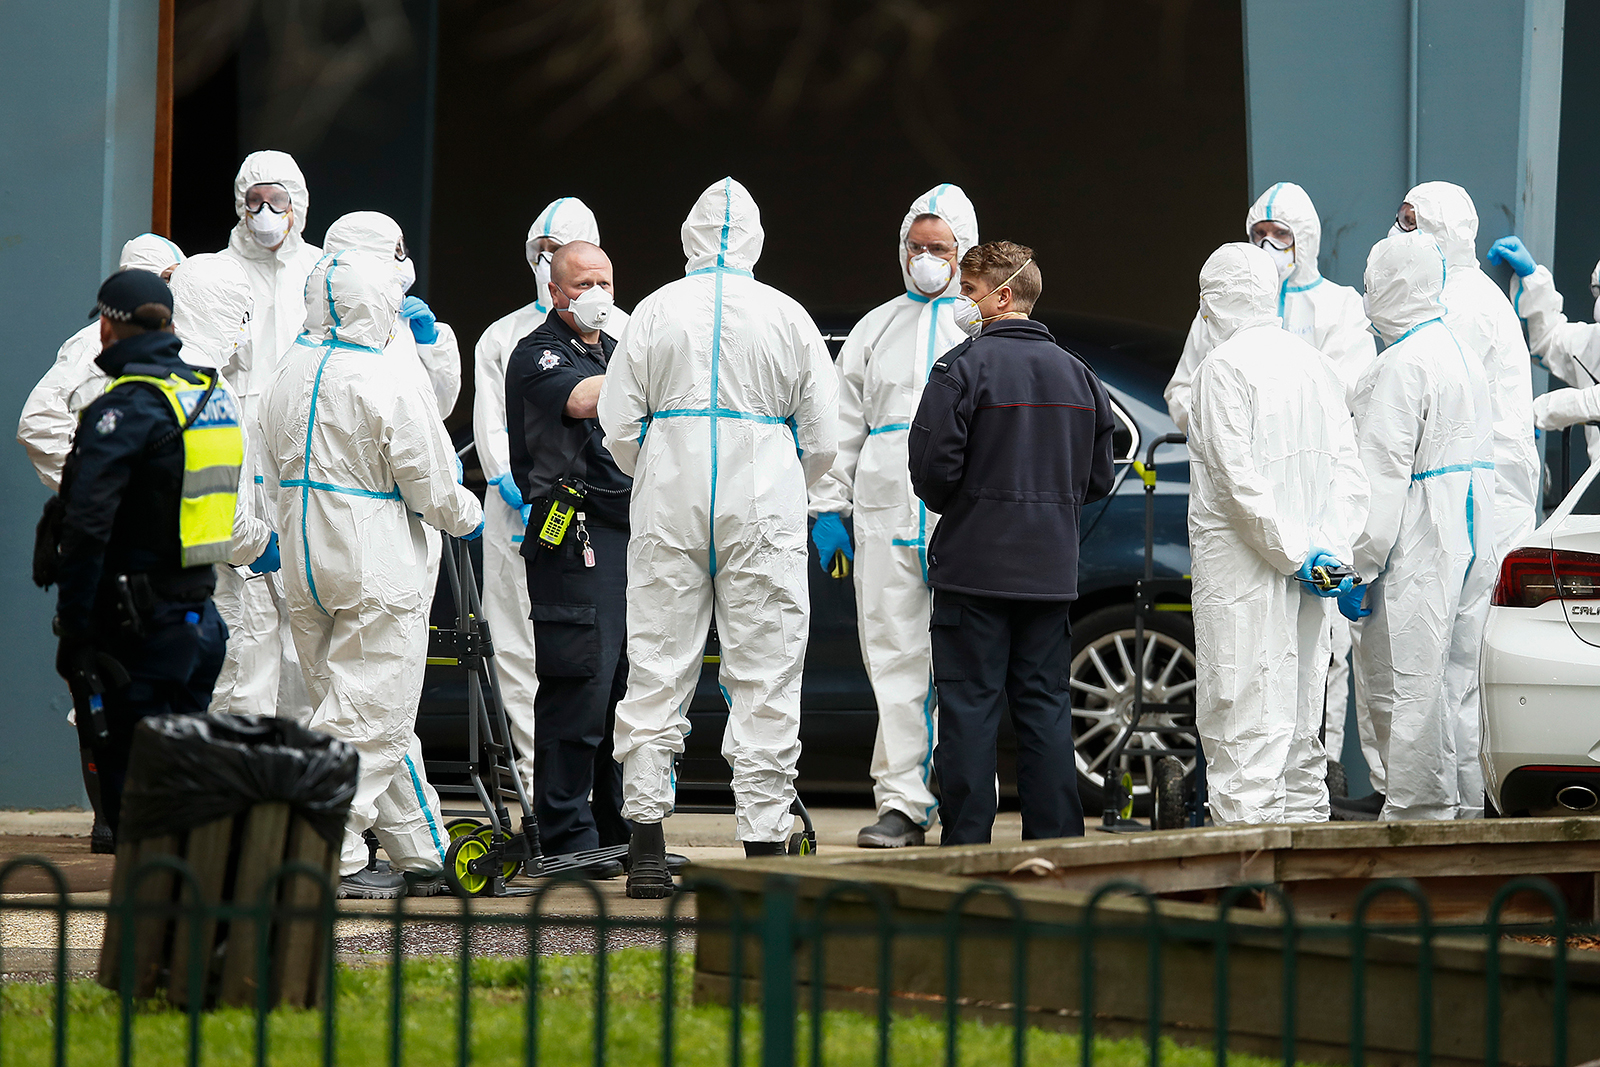 Workers in personal protective equipment are seen, along side police patrols, on July 7, in Melbourne, Australia.